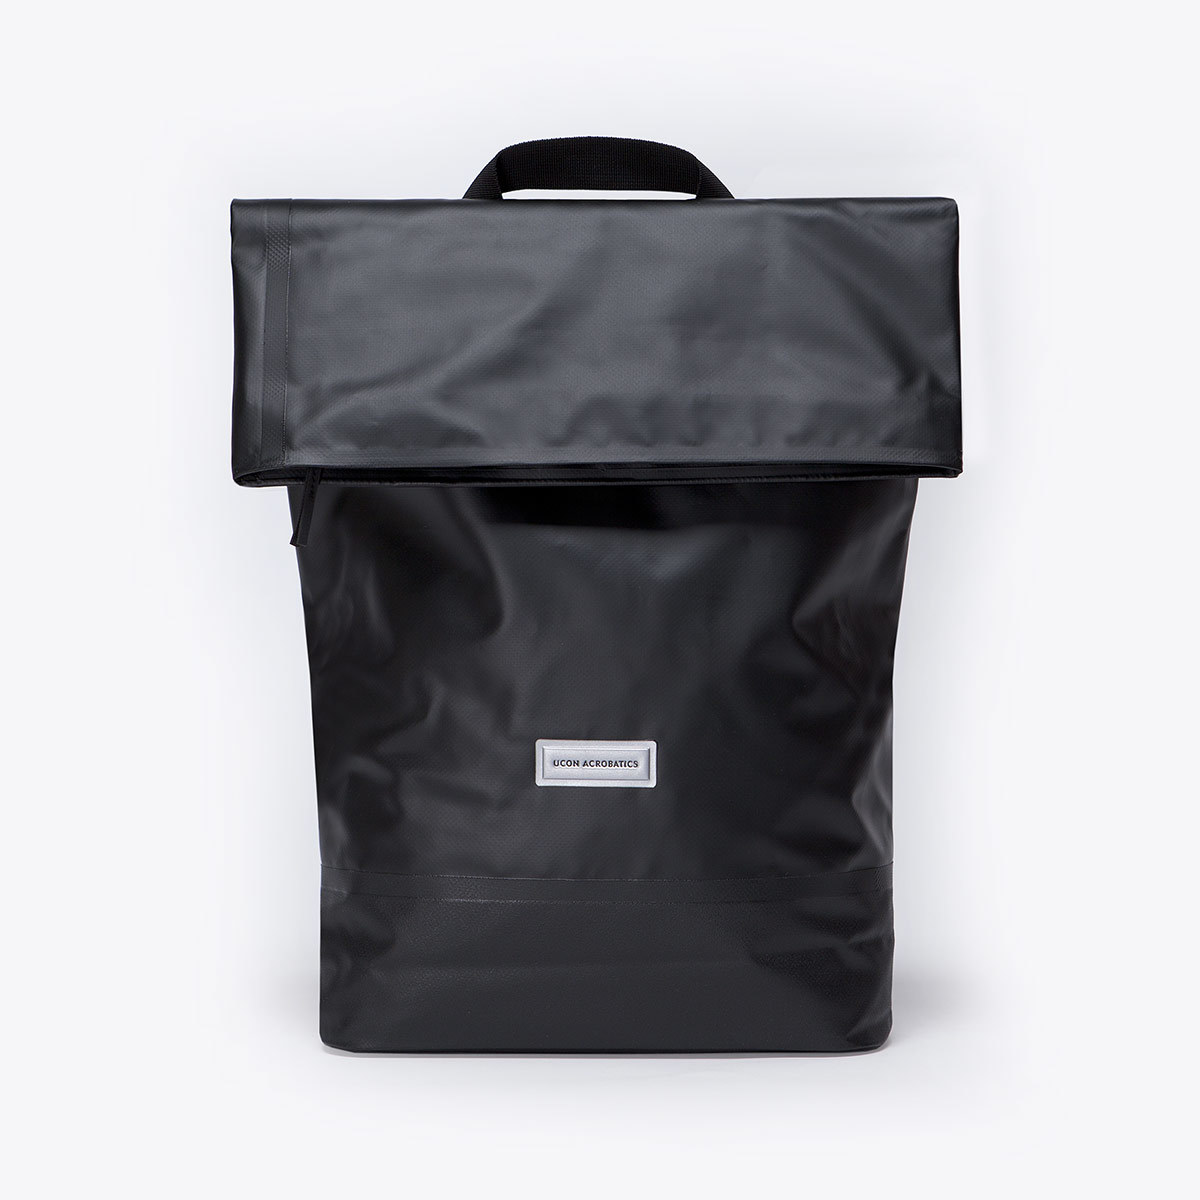 UA_Karlo-Backpack_Seal-Series_Black_01.jpg